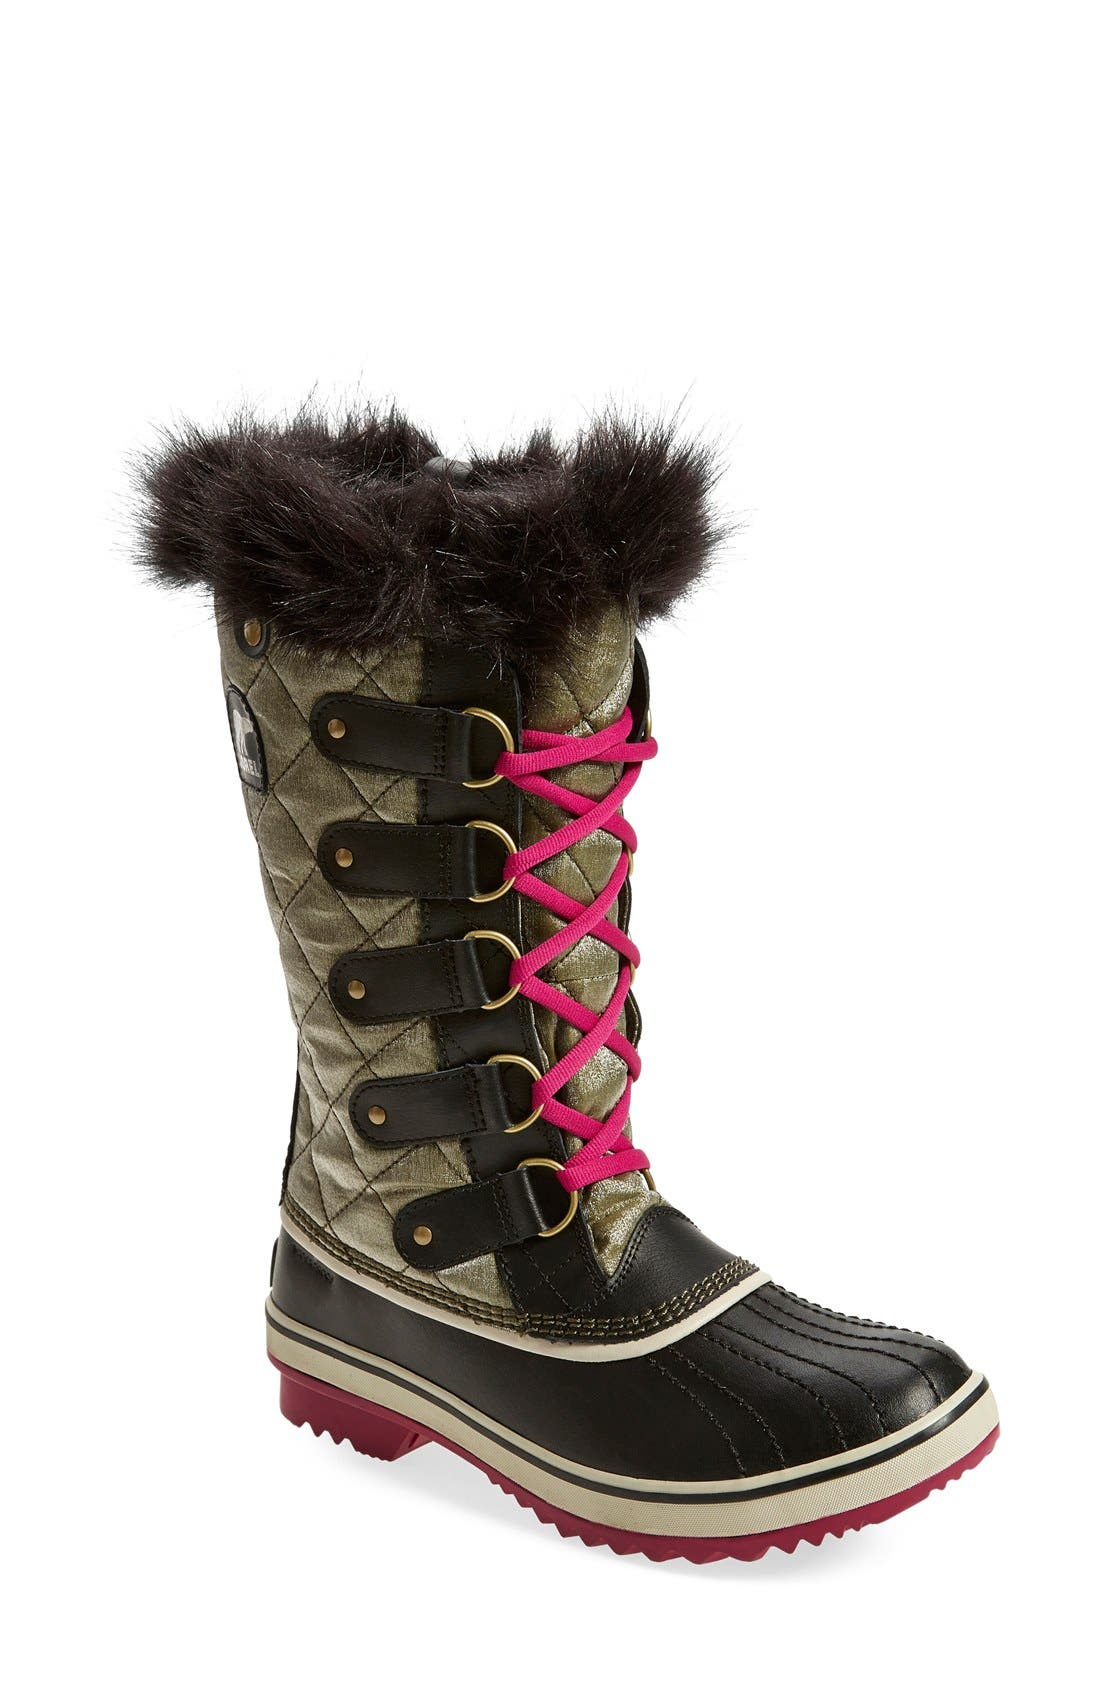 Main Image - SOREL 'Tofino' Boot